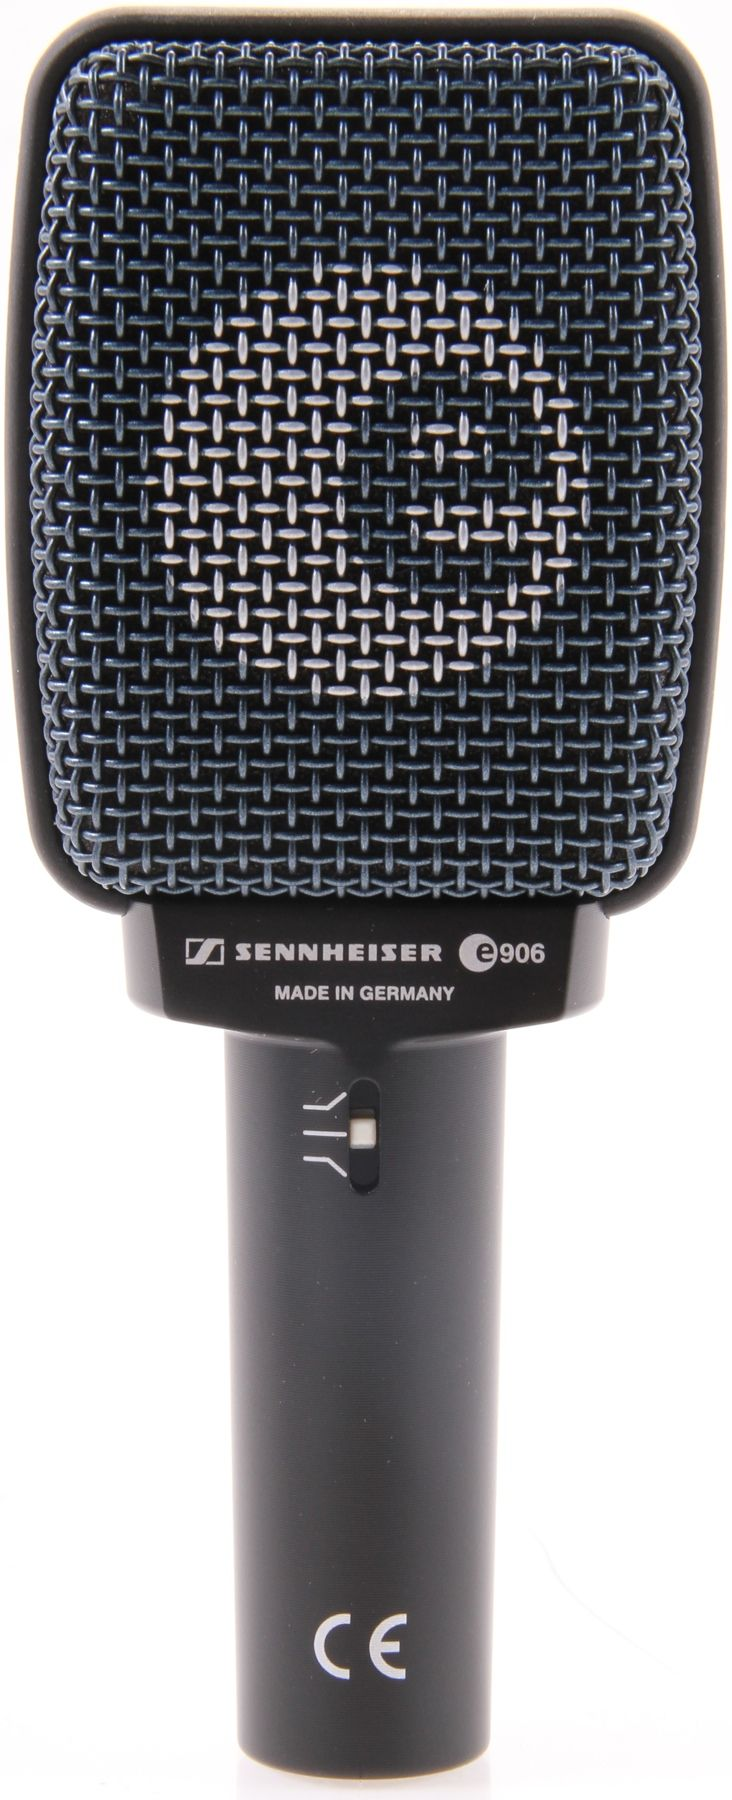 19 best microphones for live sound images on pinterest audio drum and drum kit. Black Bedroom Furniture Sets. Home Design Ideas